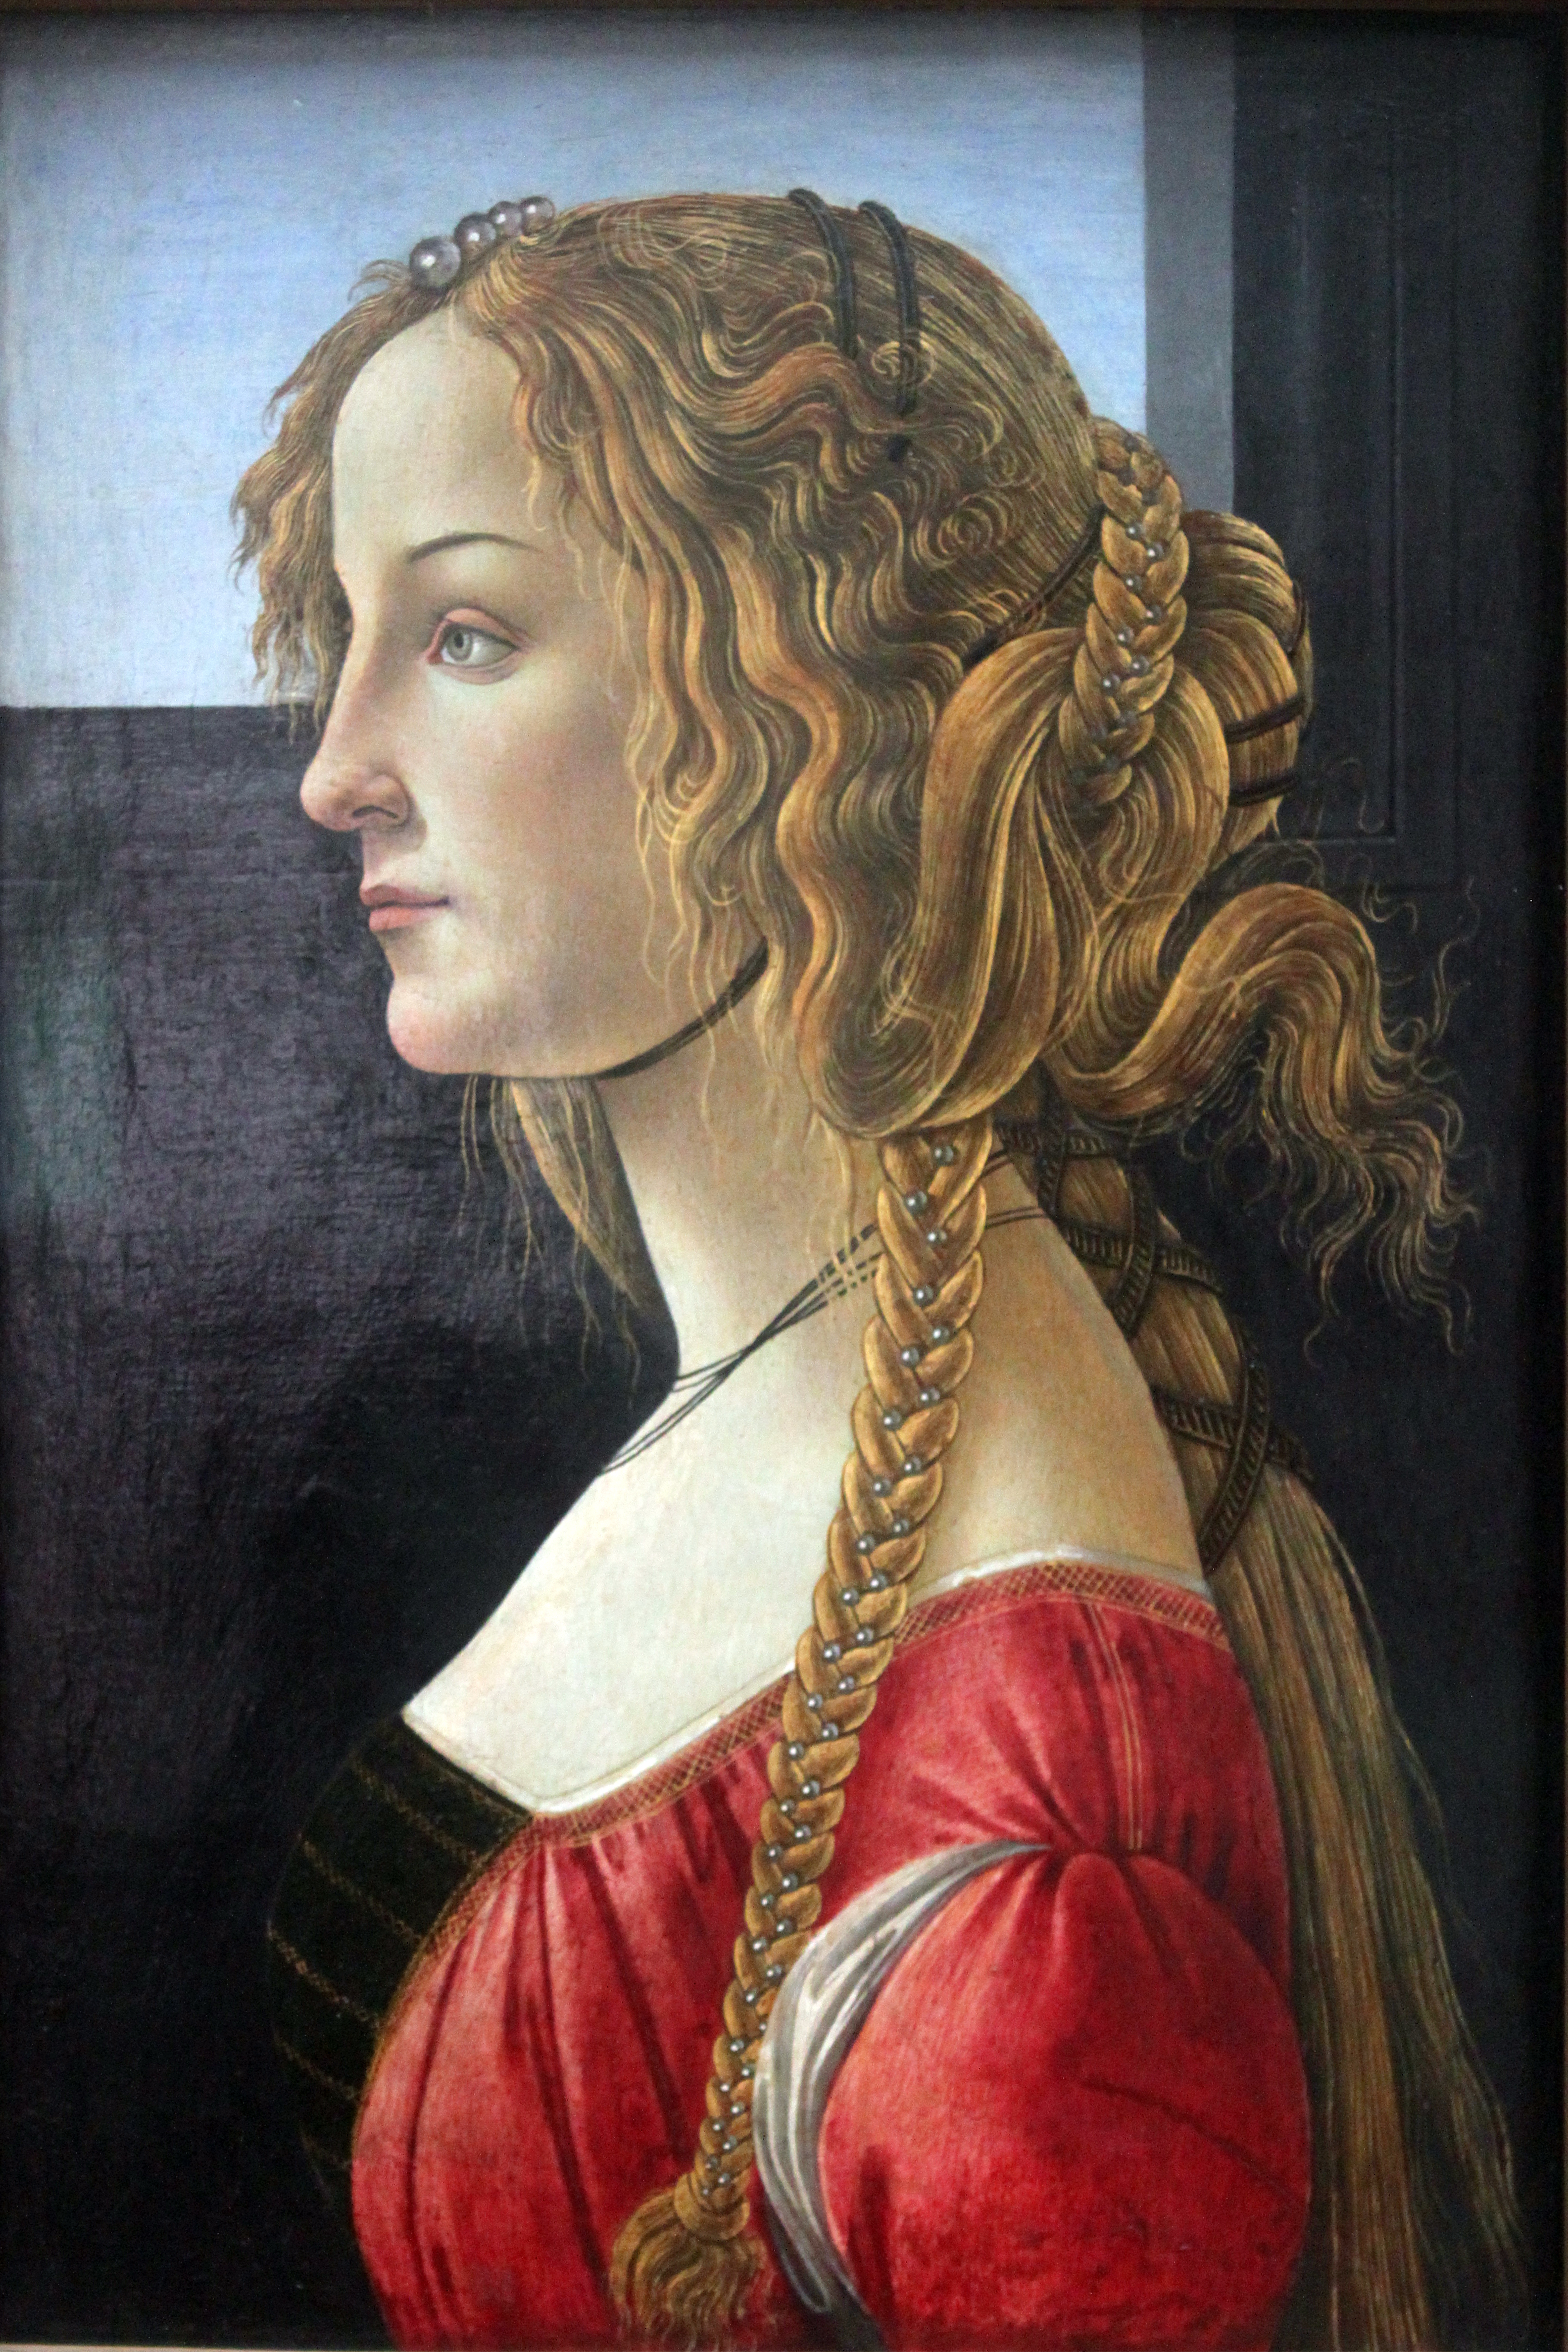 a summary of the works of sandro botticelli Birth of venus (1484-86) by botticelli: evaluation, analysis, pictures of  renaissance painting  interpretation, analysis of renaissance allegorical  painting  of mythological pictures painted by sandro botticelli (1445-1510) in  the 1480s,.